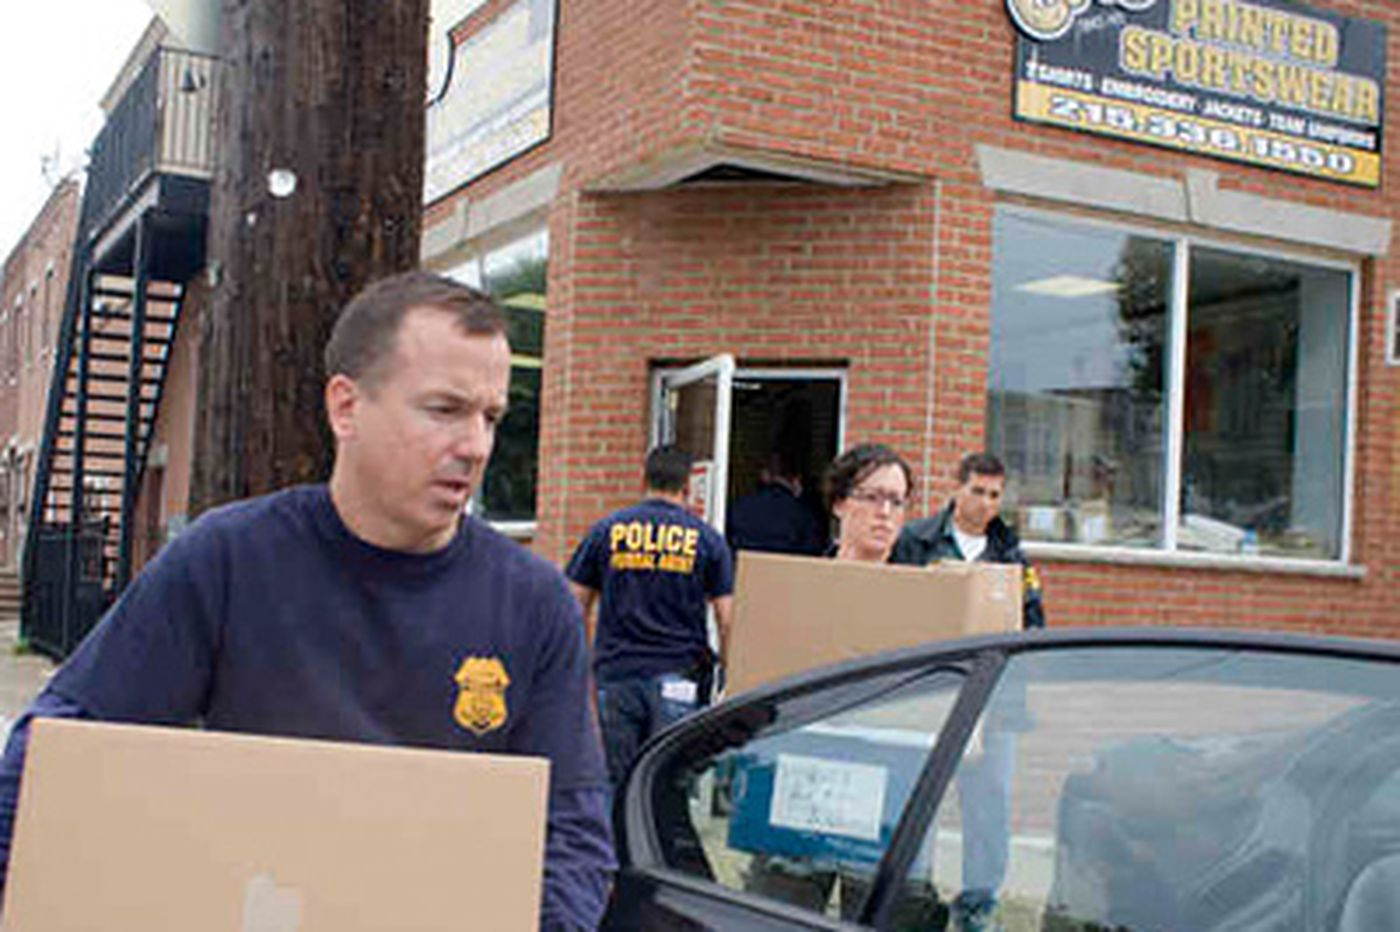 Raided South Philadelphia sporting goods store produced mostly campaign clothing